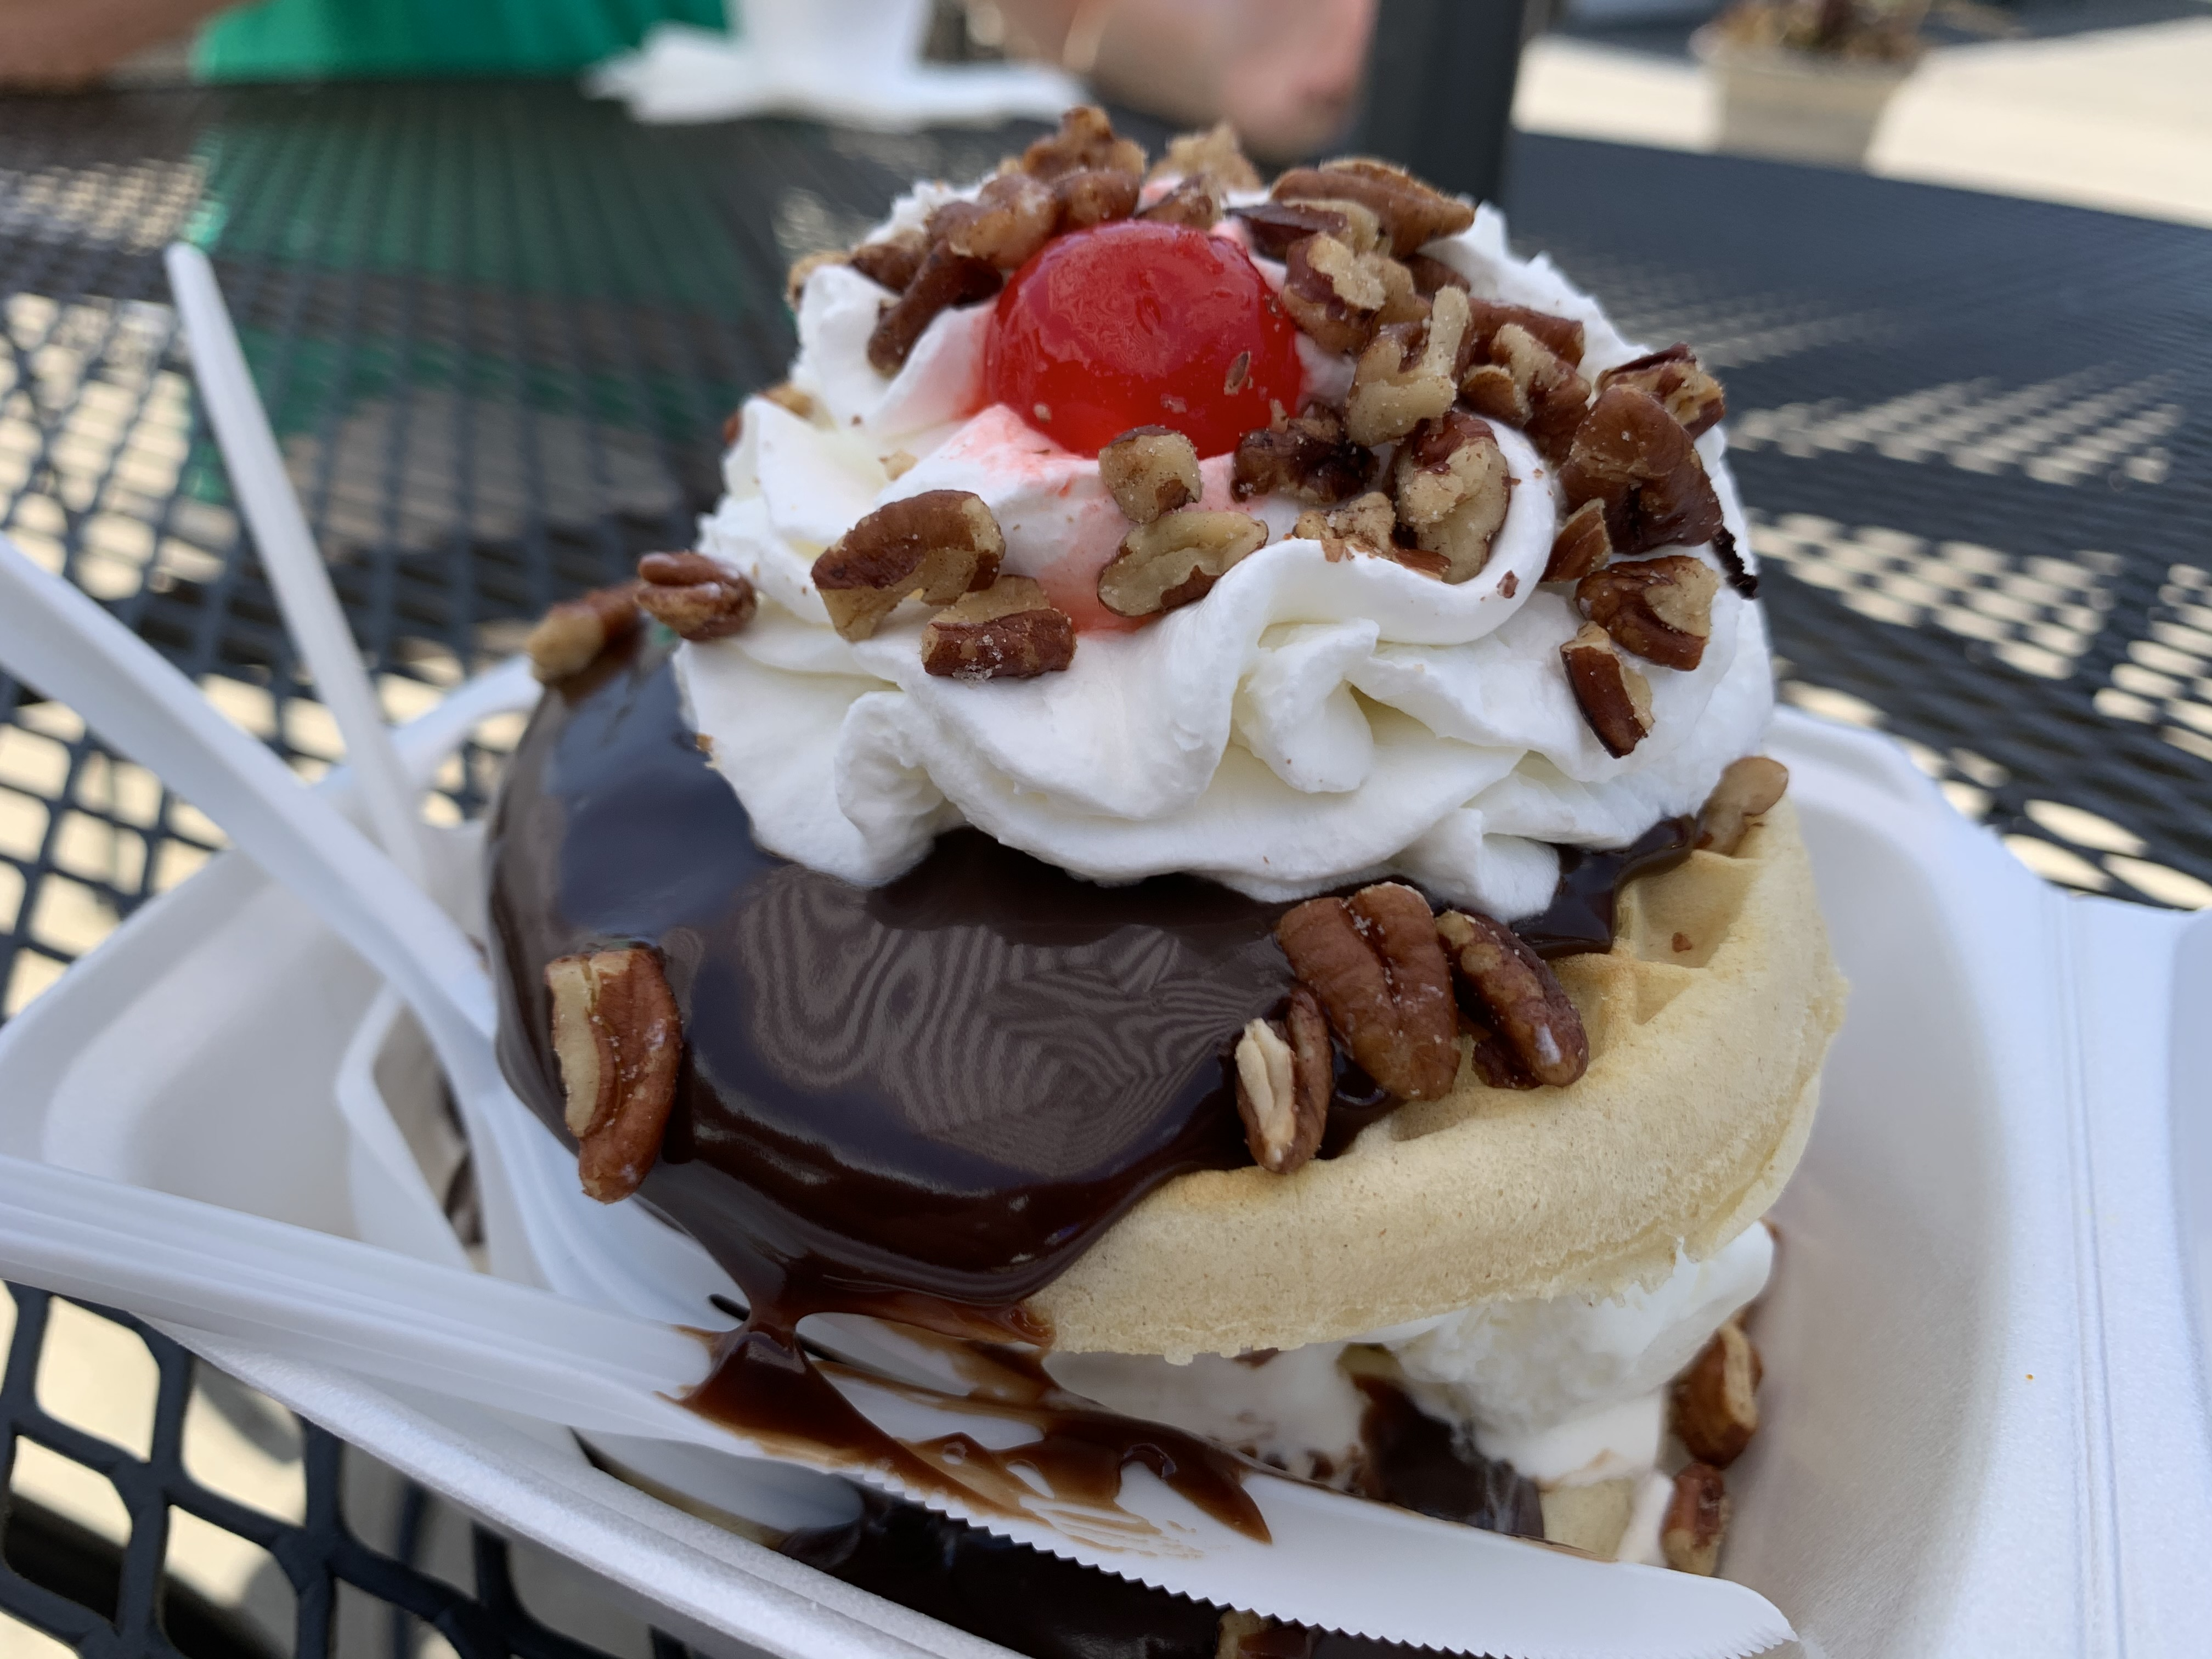 Downstate Illinois Road Trip Roundup: Fantastic Desserts in Southern Illinois